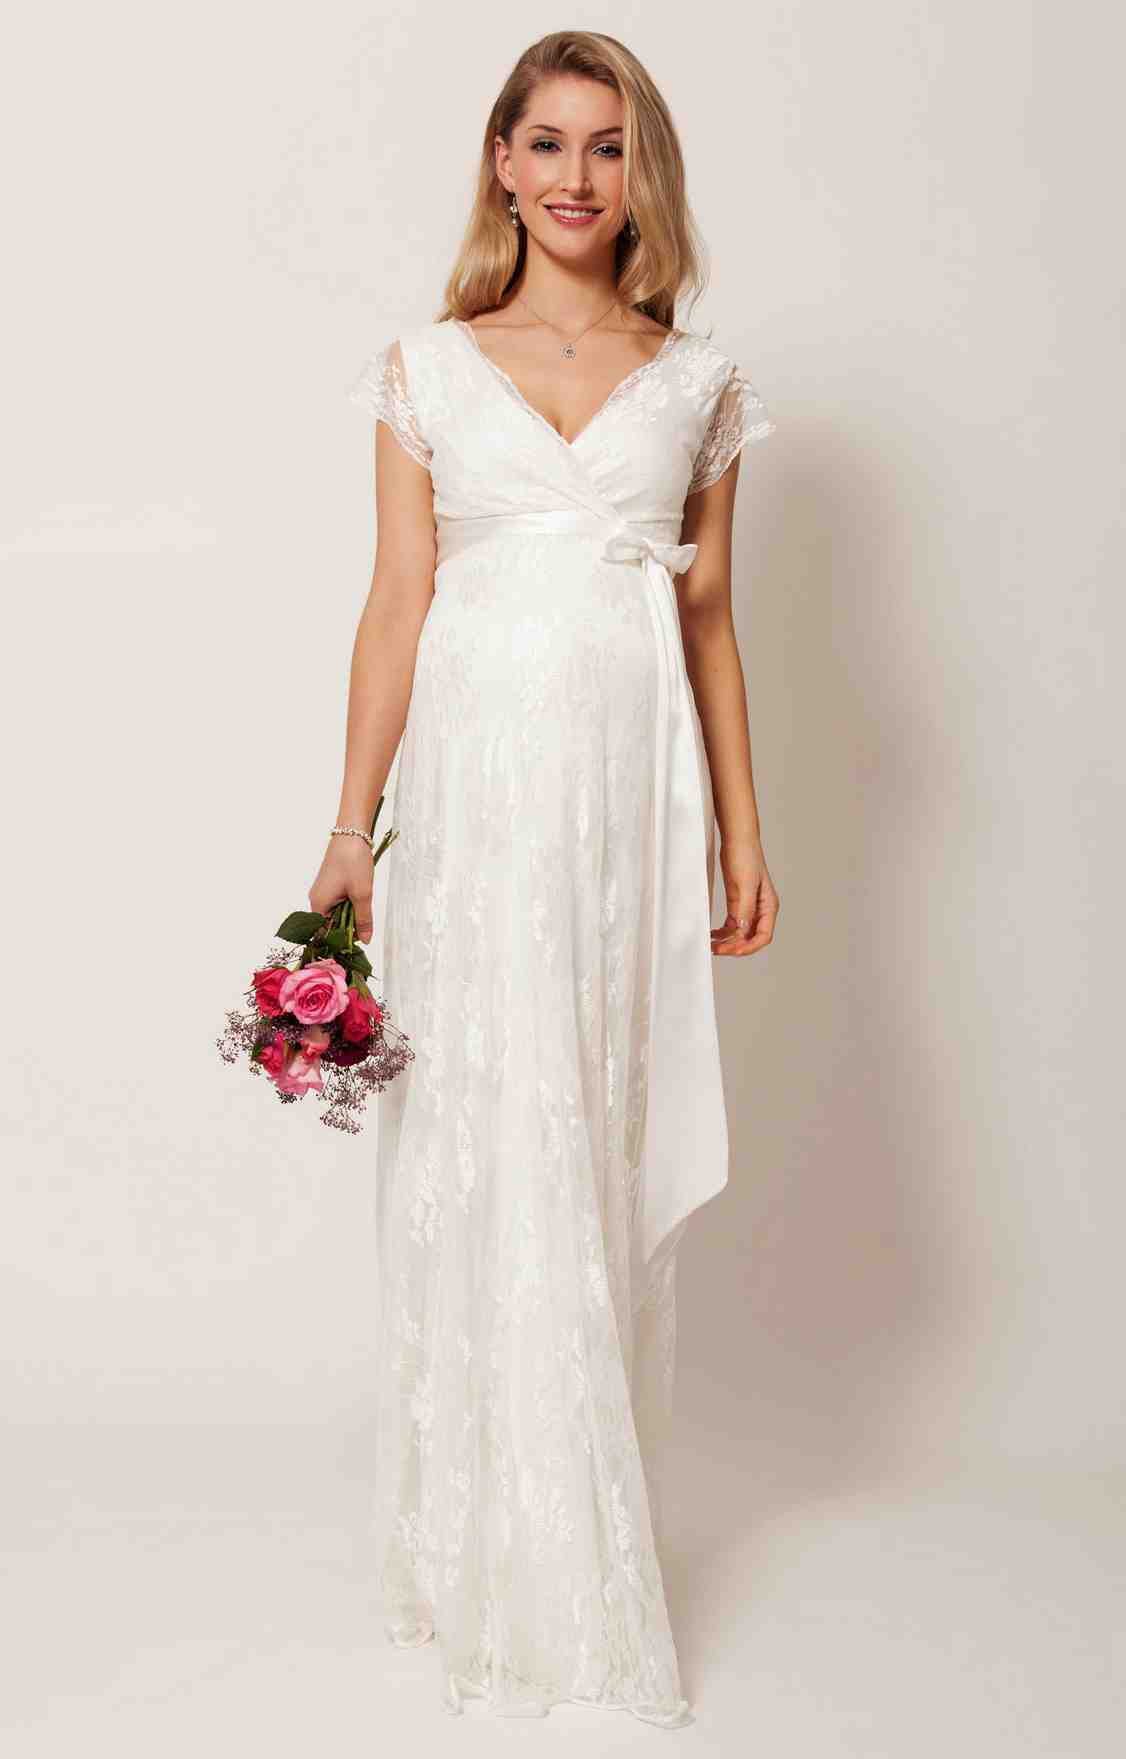 Maternity Wedding Dress How to Find the Perfect Dress